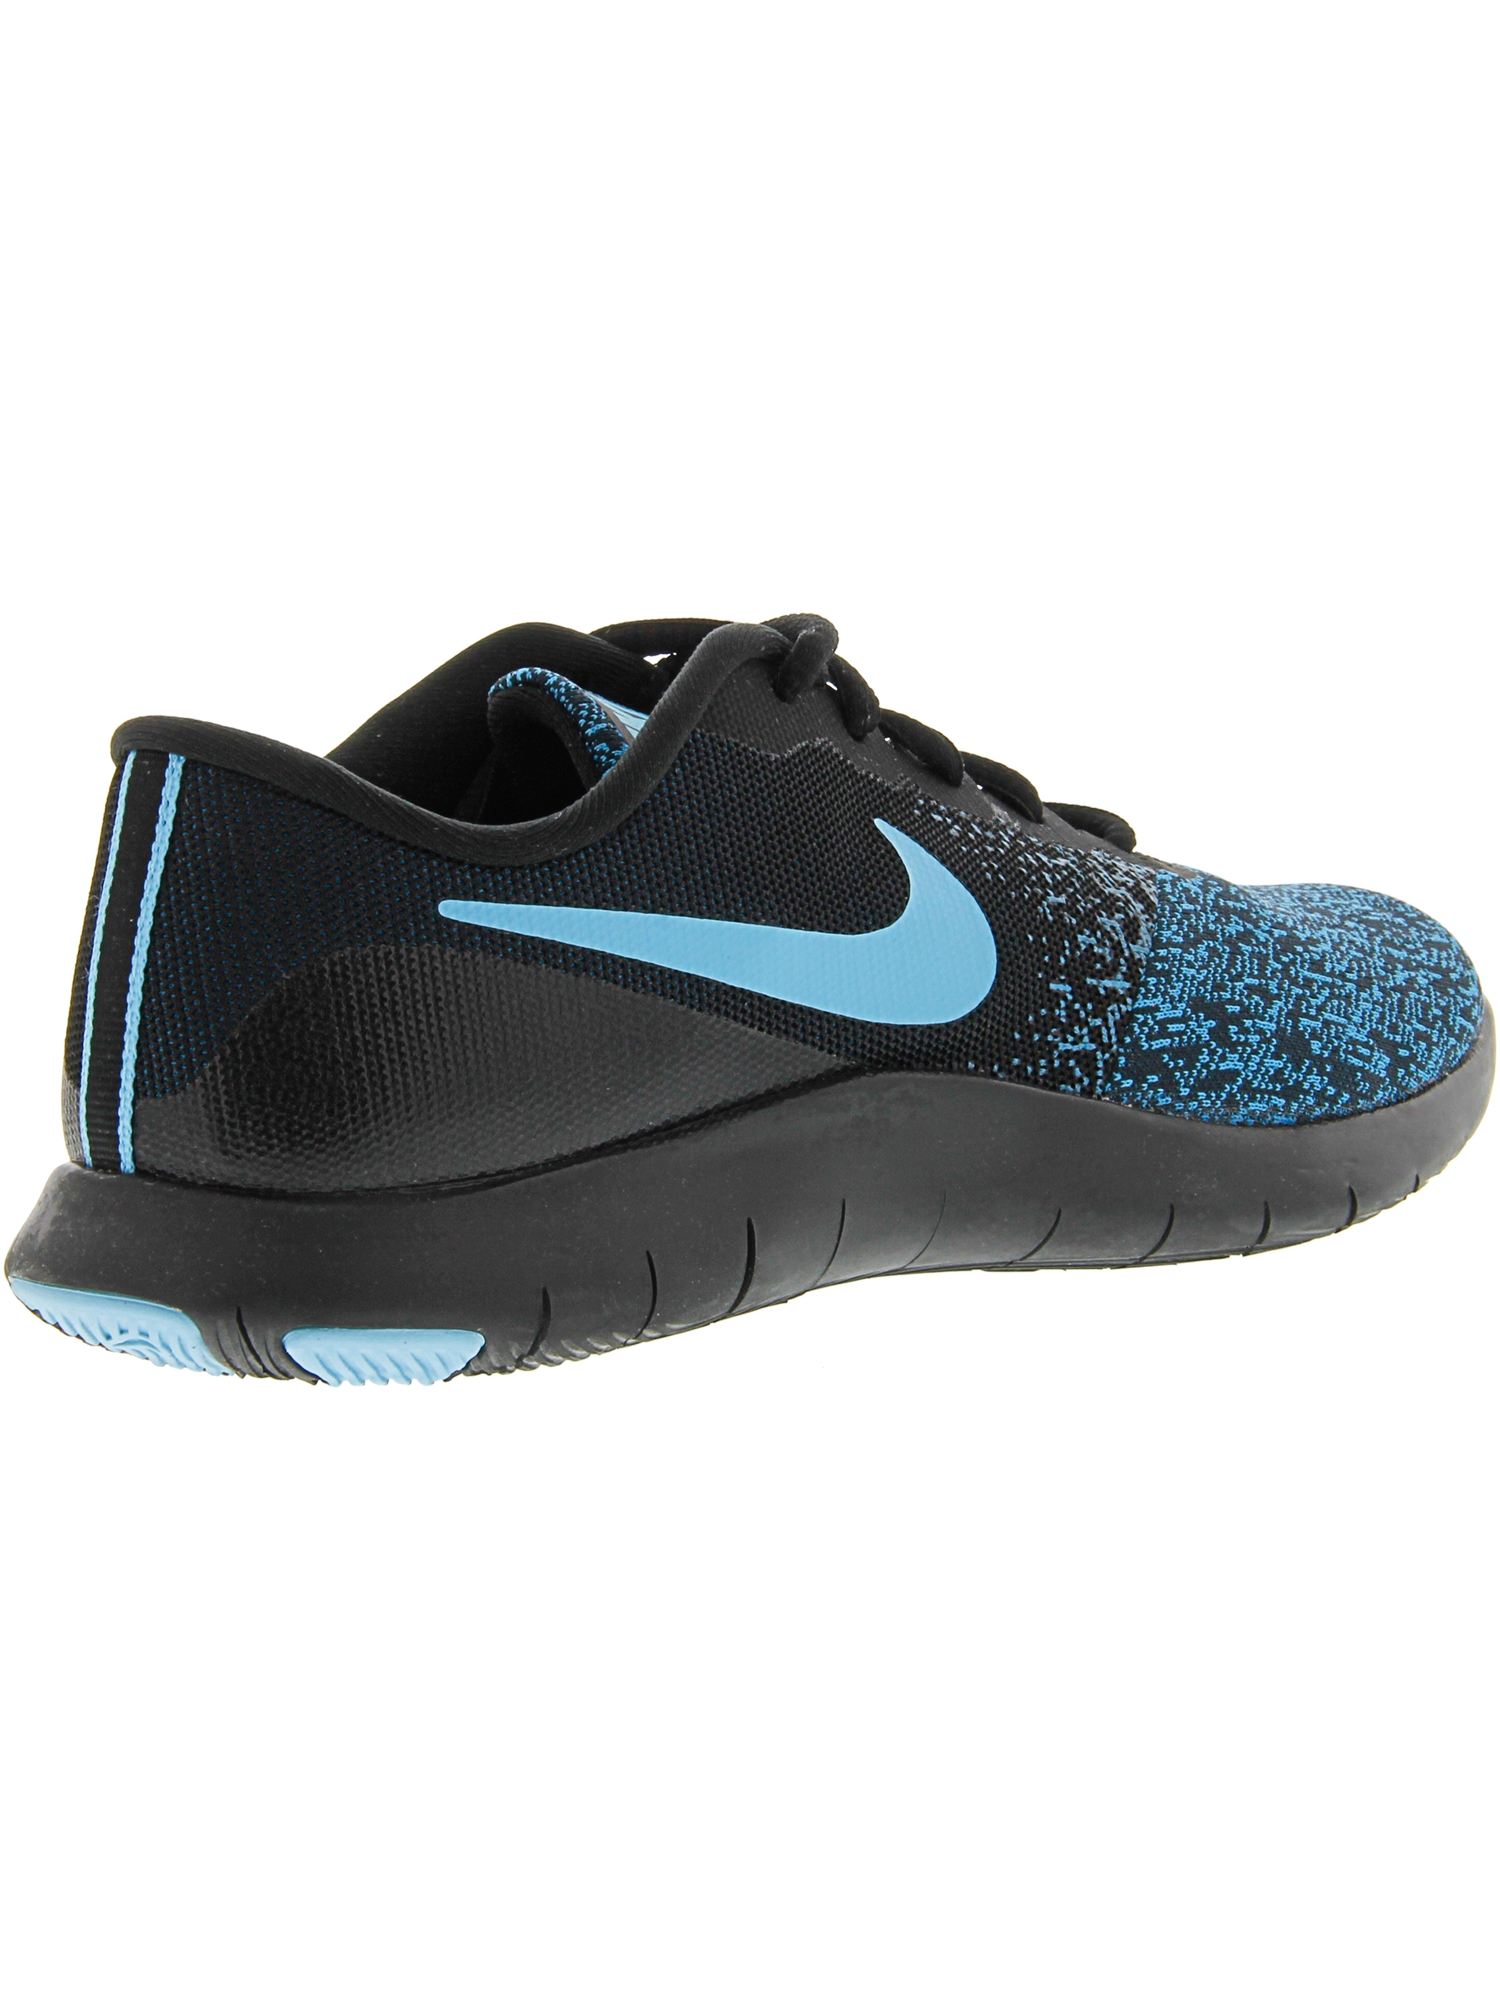 7a402fcc8636 Nike - Nike Women s Flex Contact Black   Lagoon Pulse - Green Abyss  Ankle-High Running Shoe 6.5M - Walmart.com